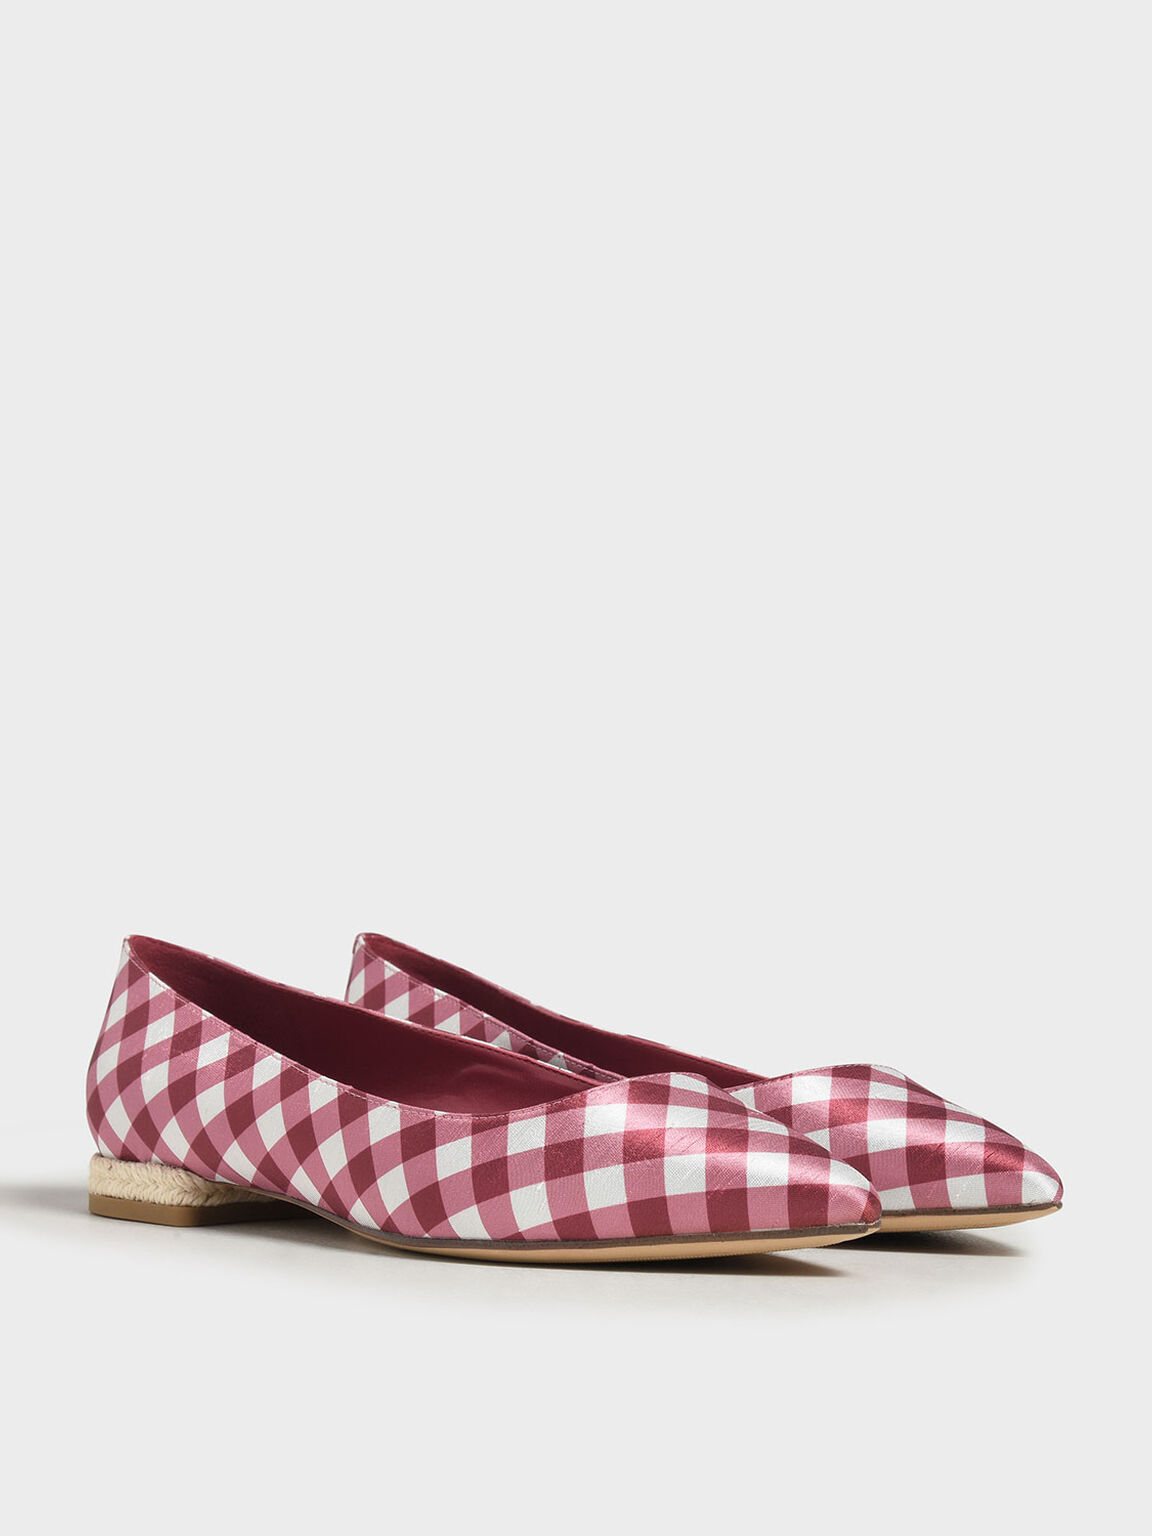 Espadrille Block Heel Check Print Ballerinas, Red, hi-res